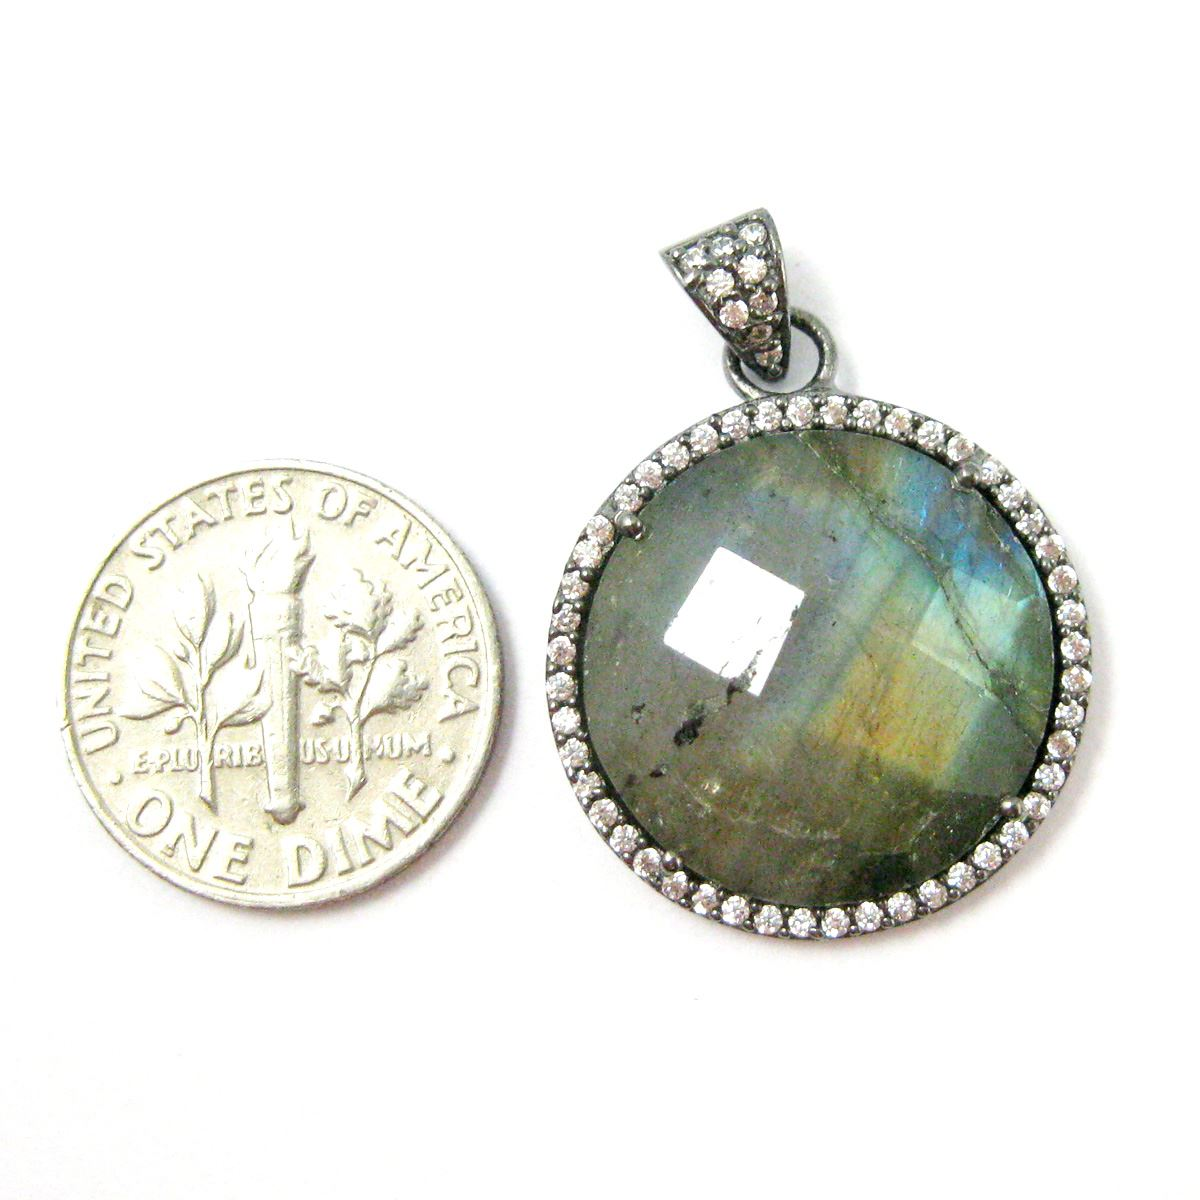 Oxidized Sterling Silver Pave Bezel Gemstone Pendant - Cubic Zirconia Pave Setting -  Round Faceted Stone-Labradorite - 21mm